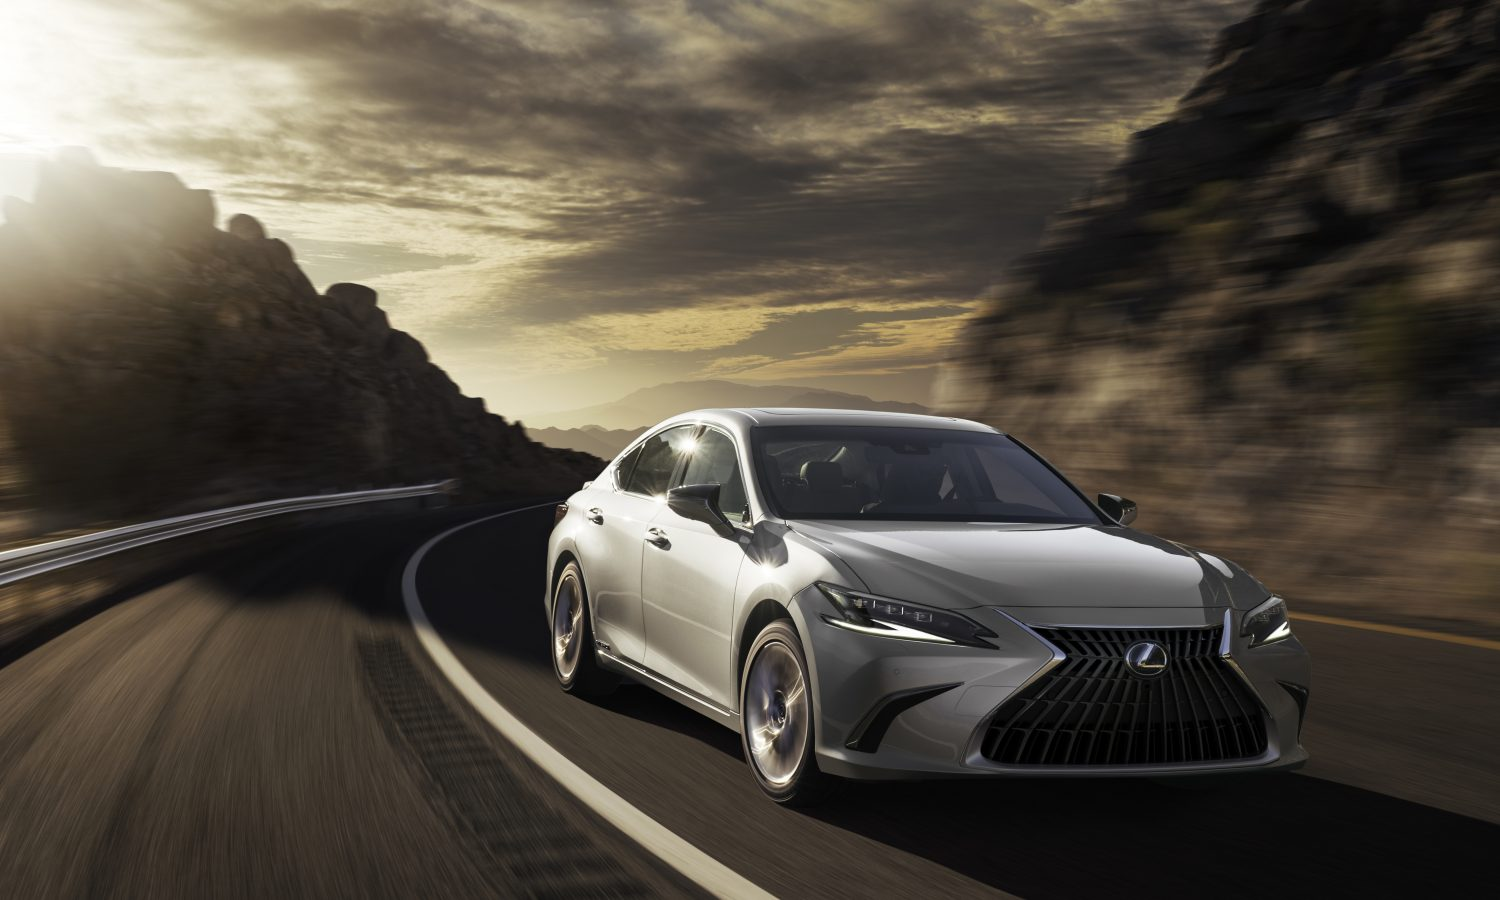 5 Things to Know About the 2022 Lexus ES